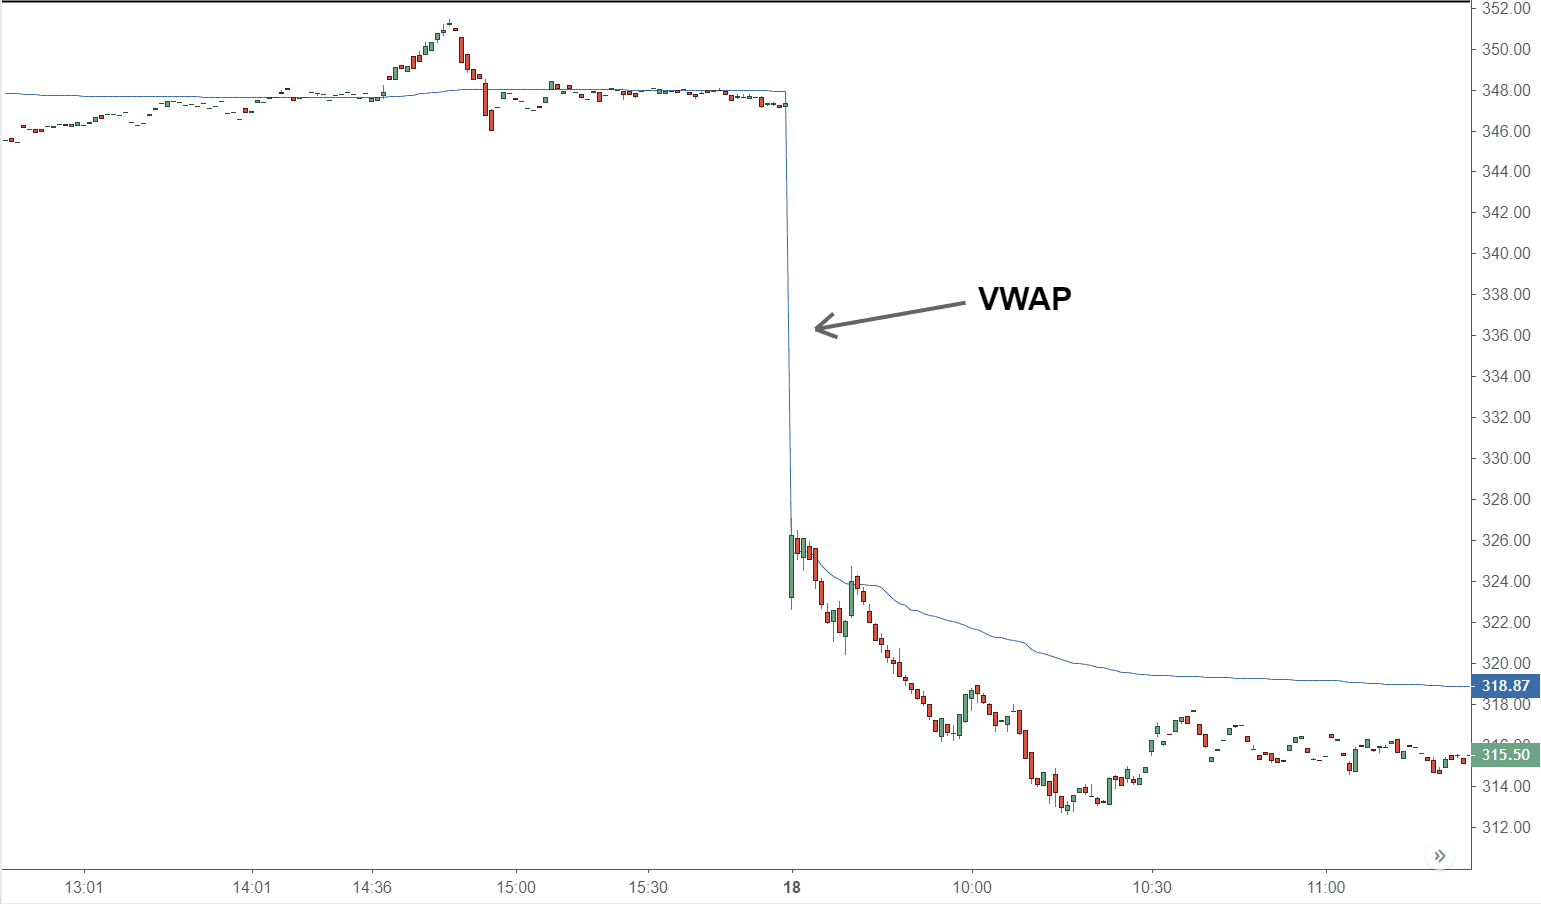 Volume Weighted Average Price (VWAP) Definition